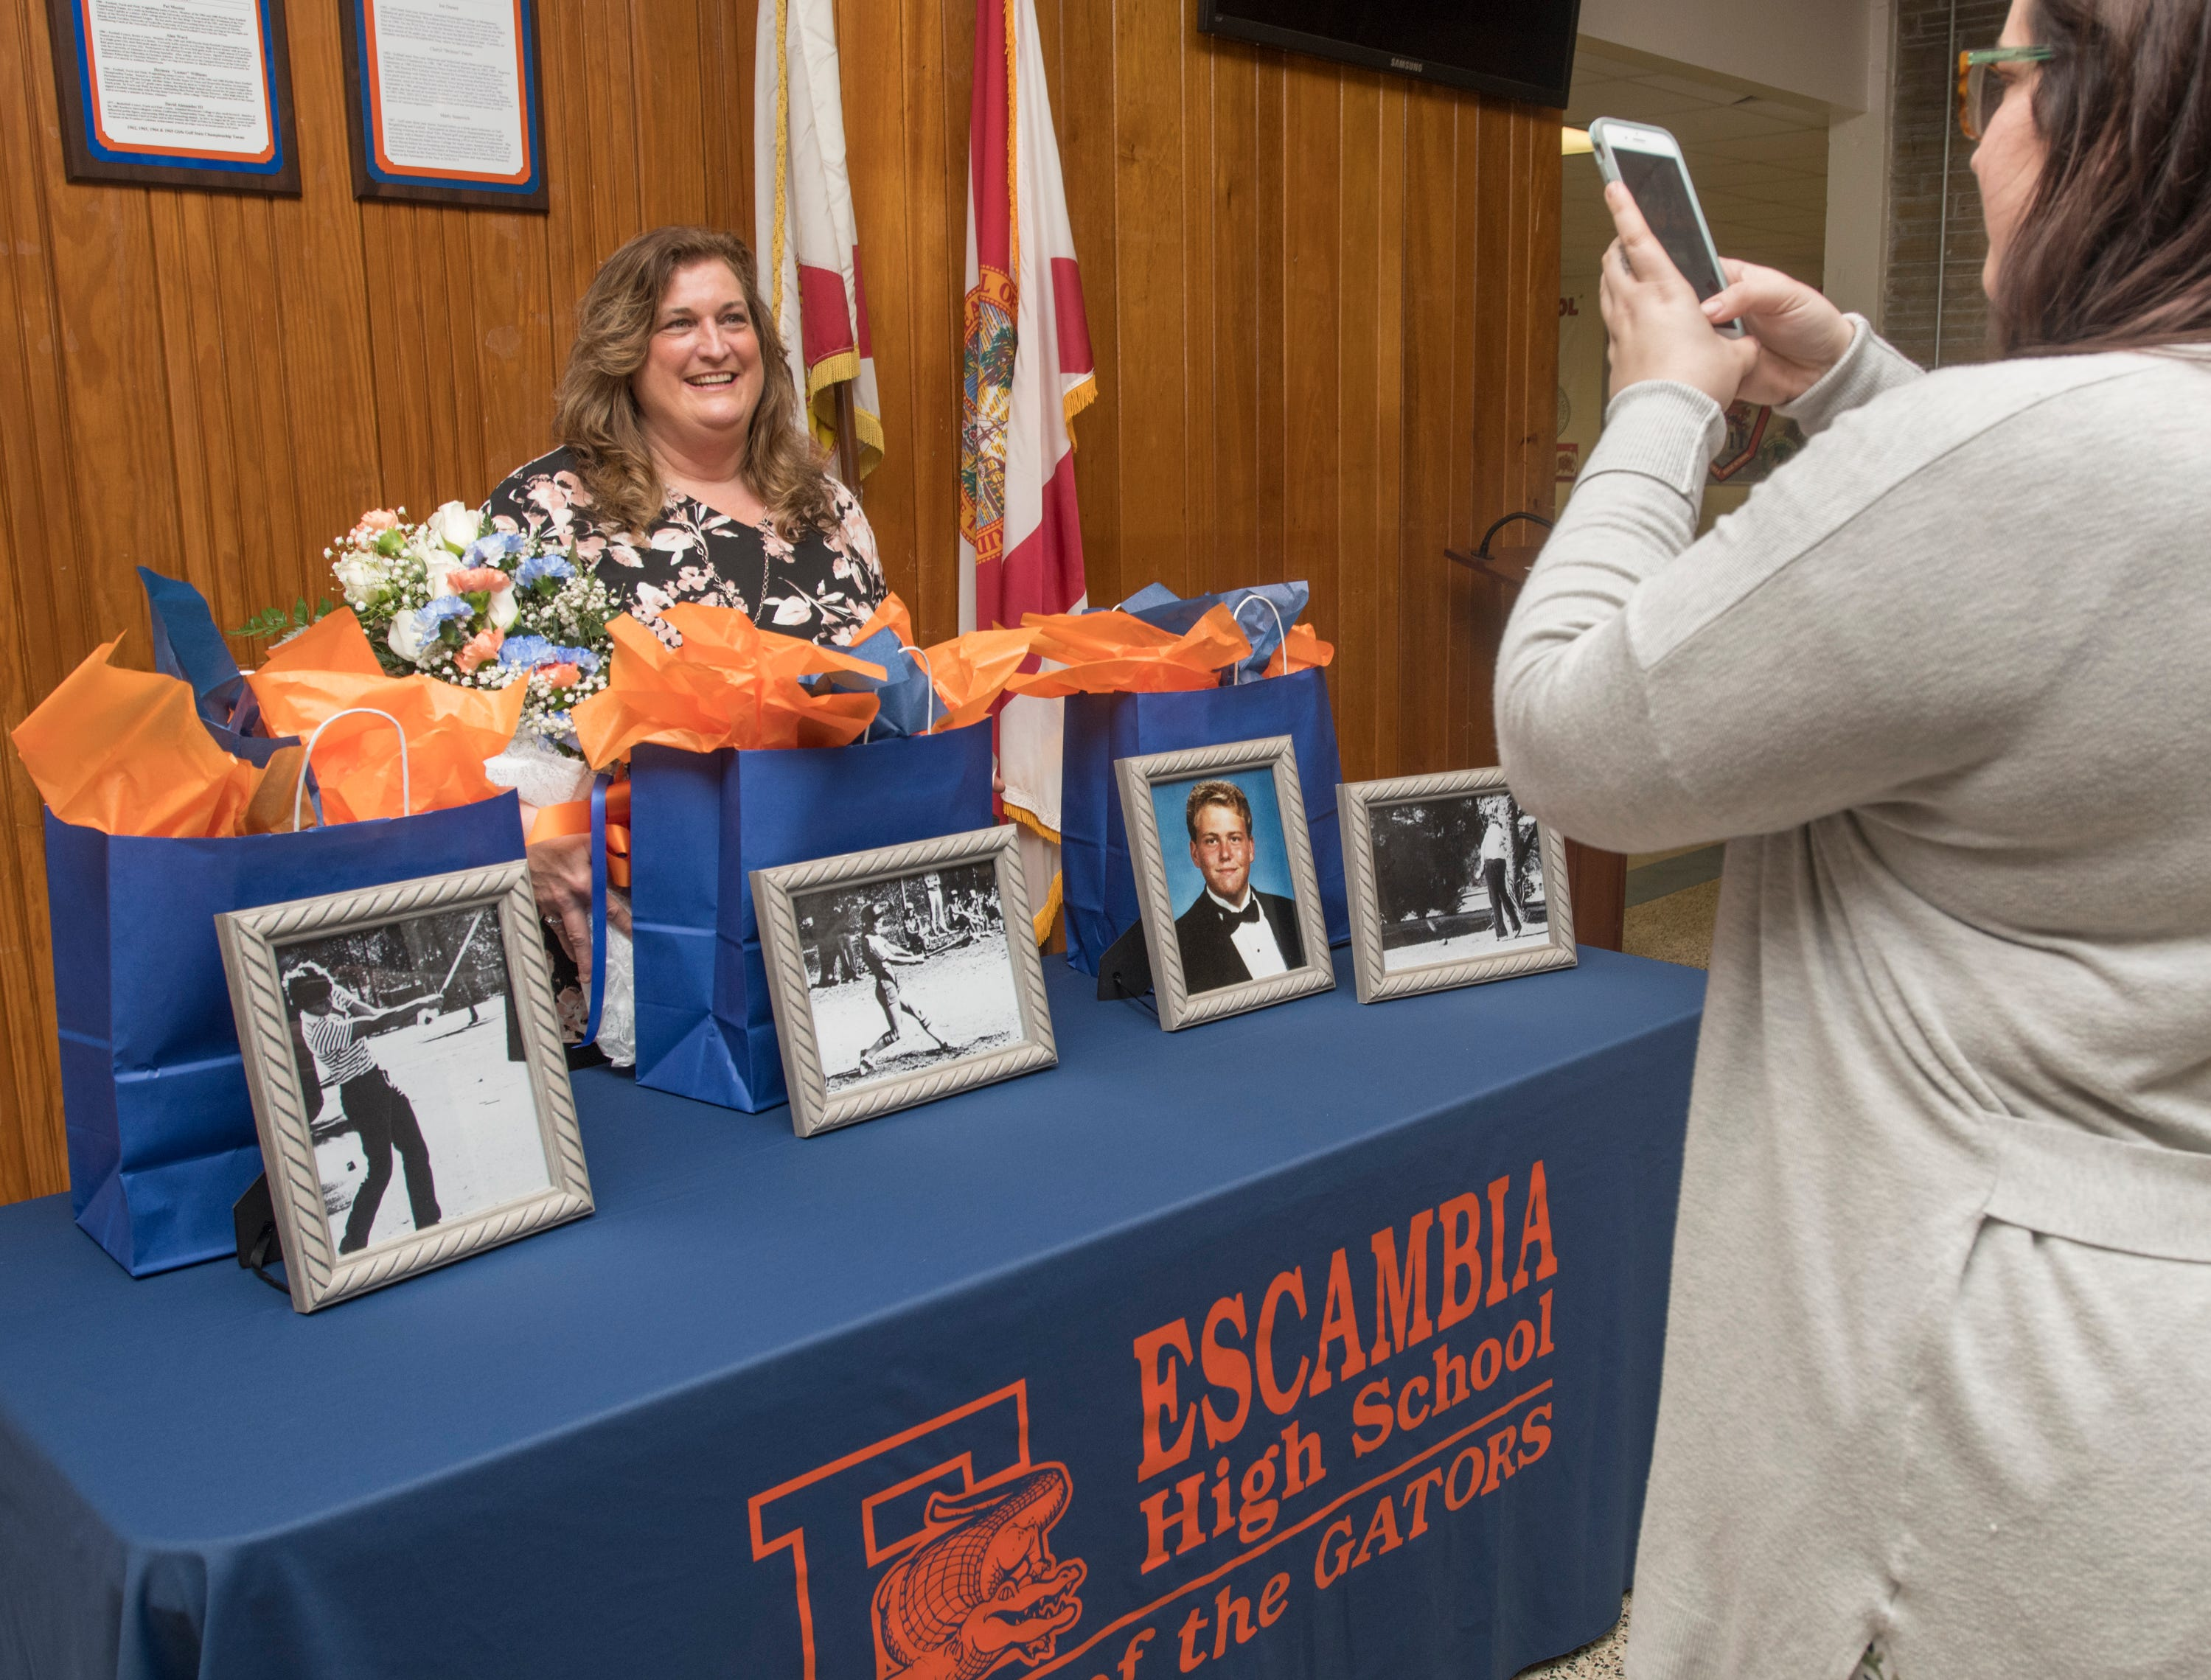 Hall of Fame class of 2018-2019 inductee Cheryl Peters poses for a photo at Escambia High School in Pensacola on March 14, 2019.